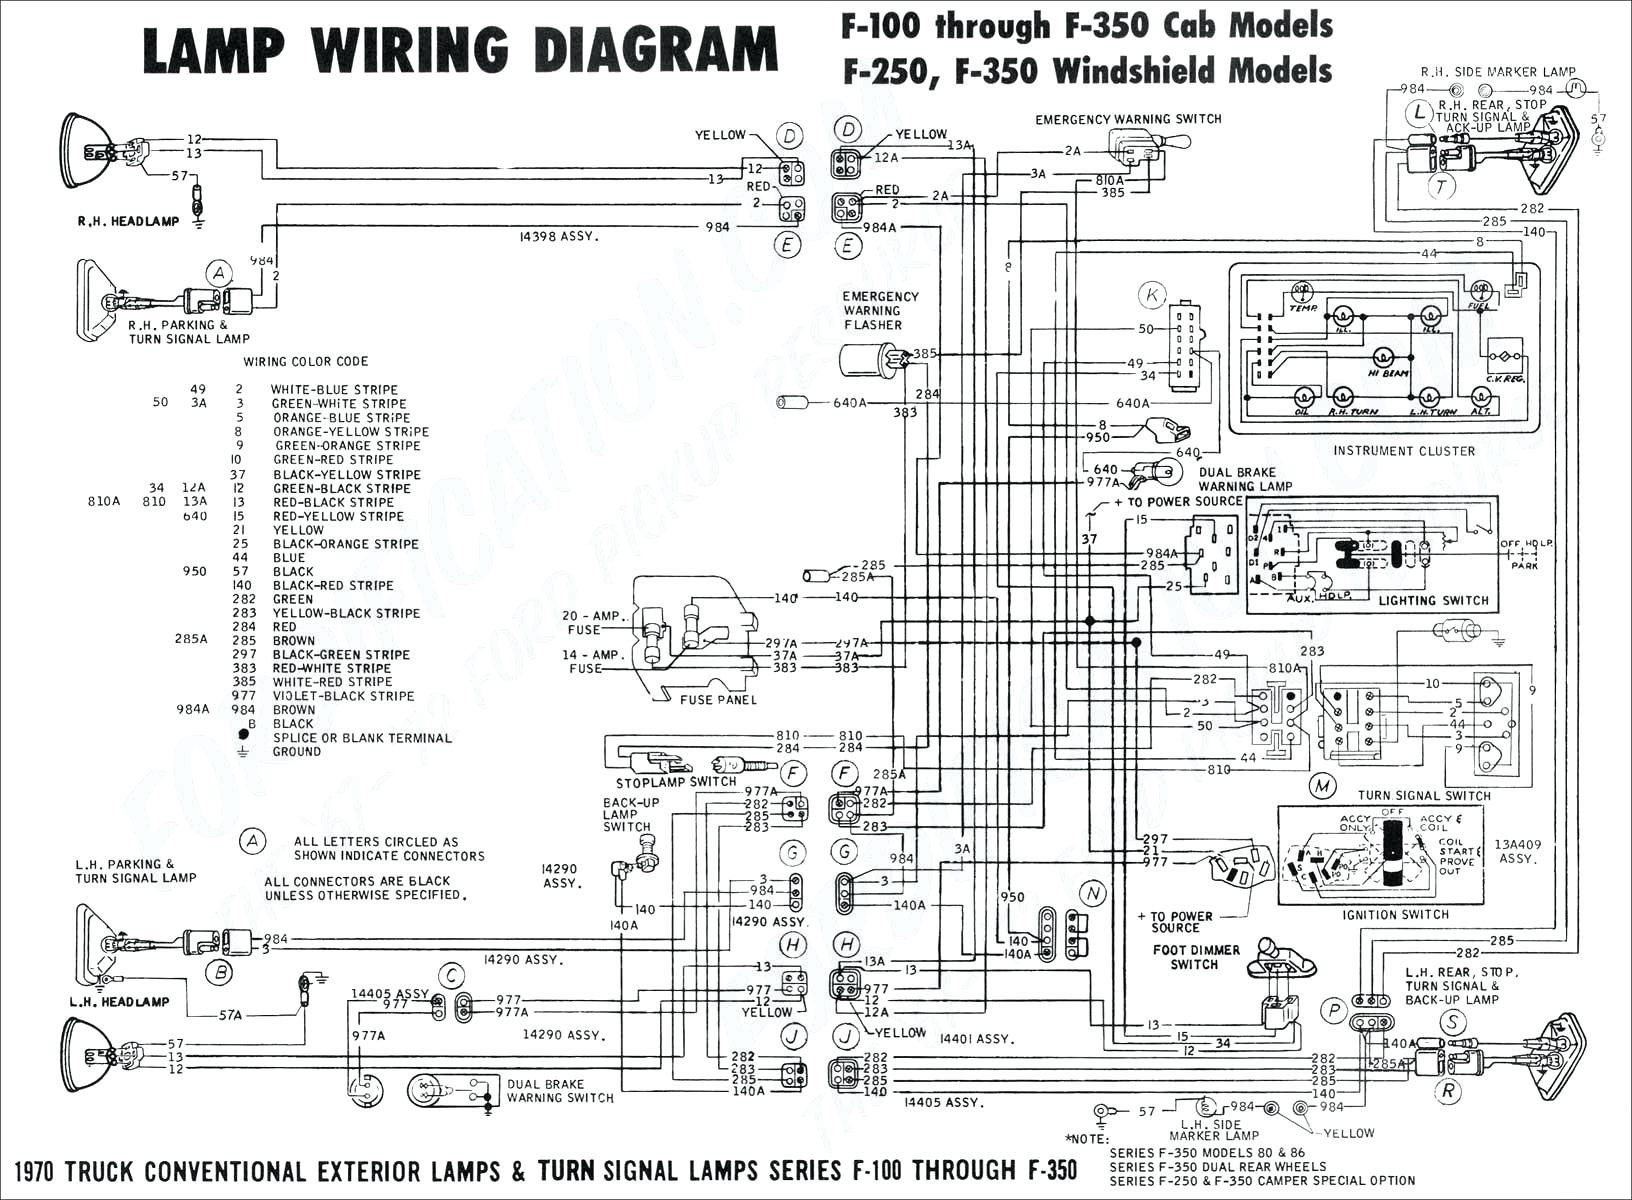 WRG-2891] Light Wiring Diagram on